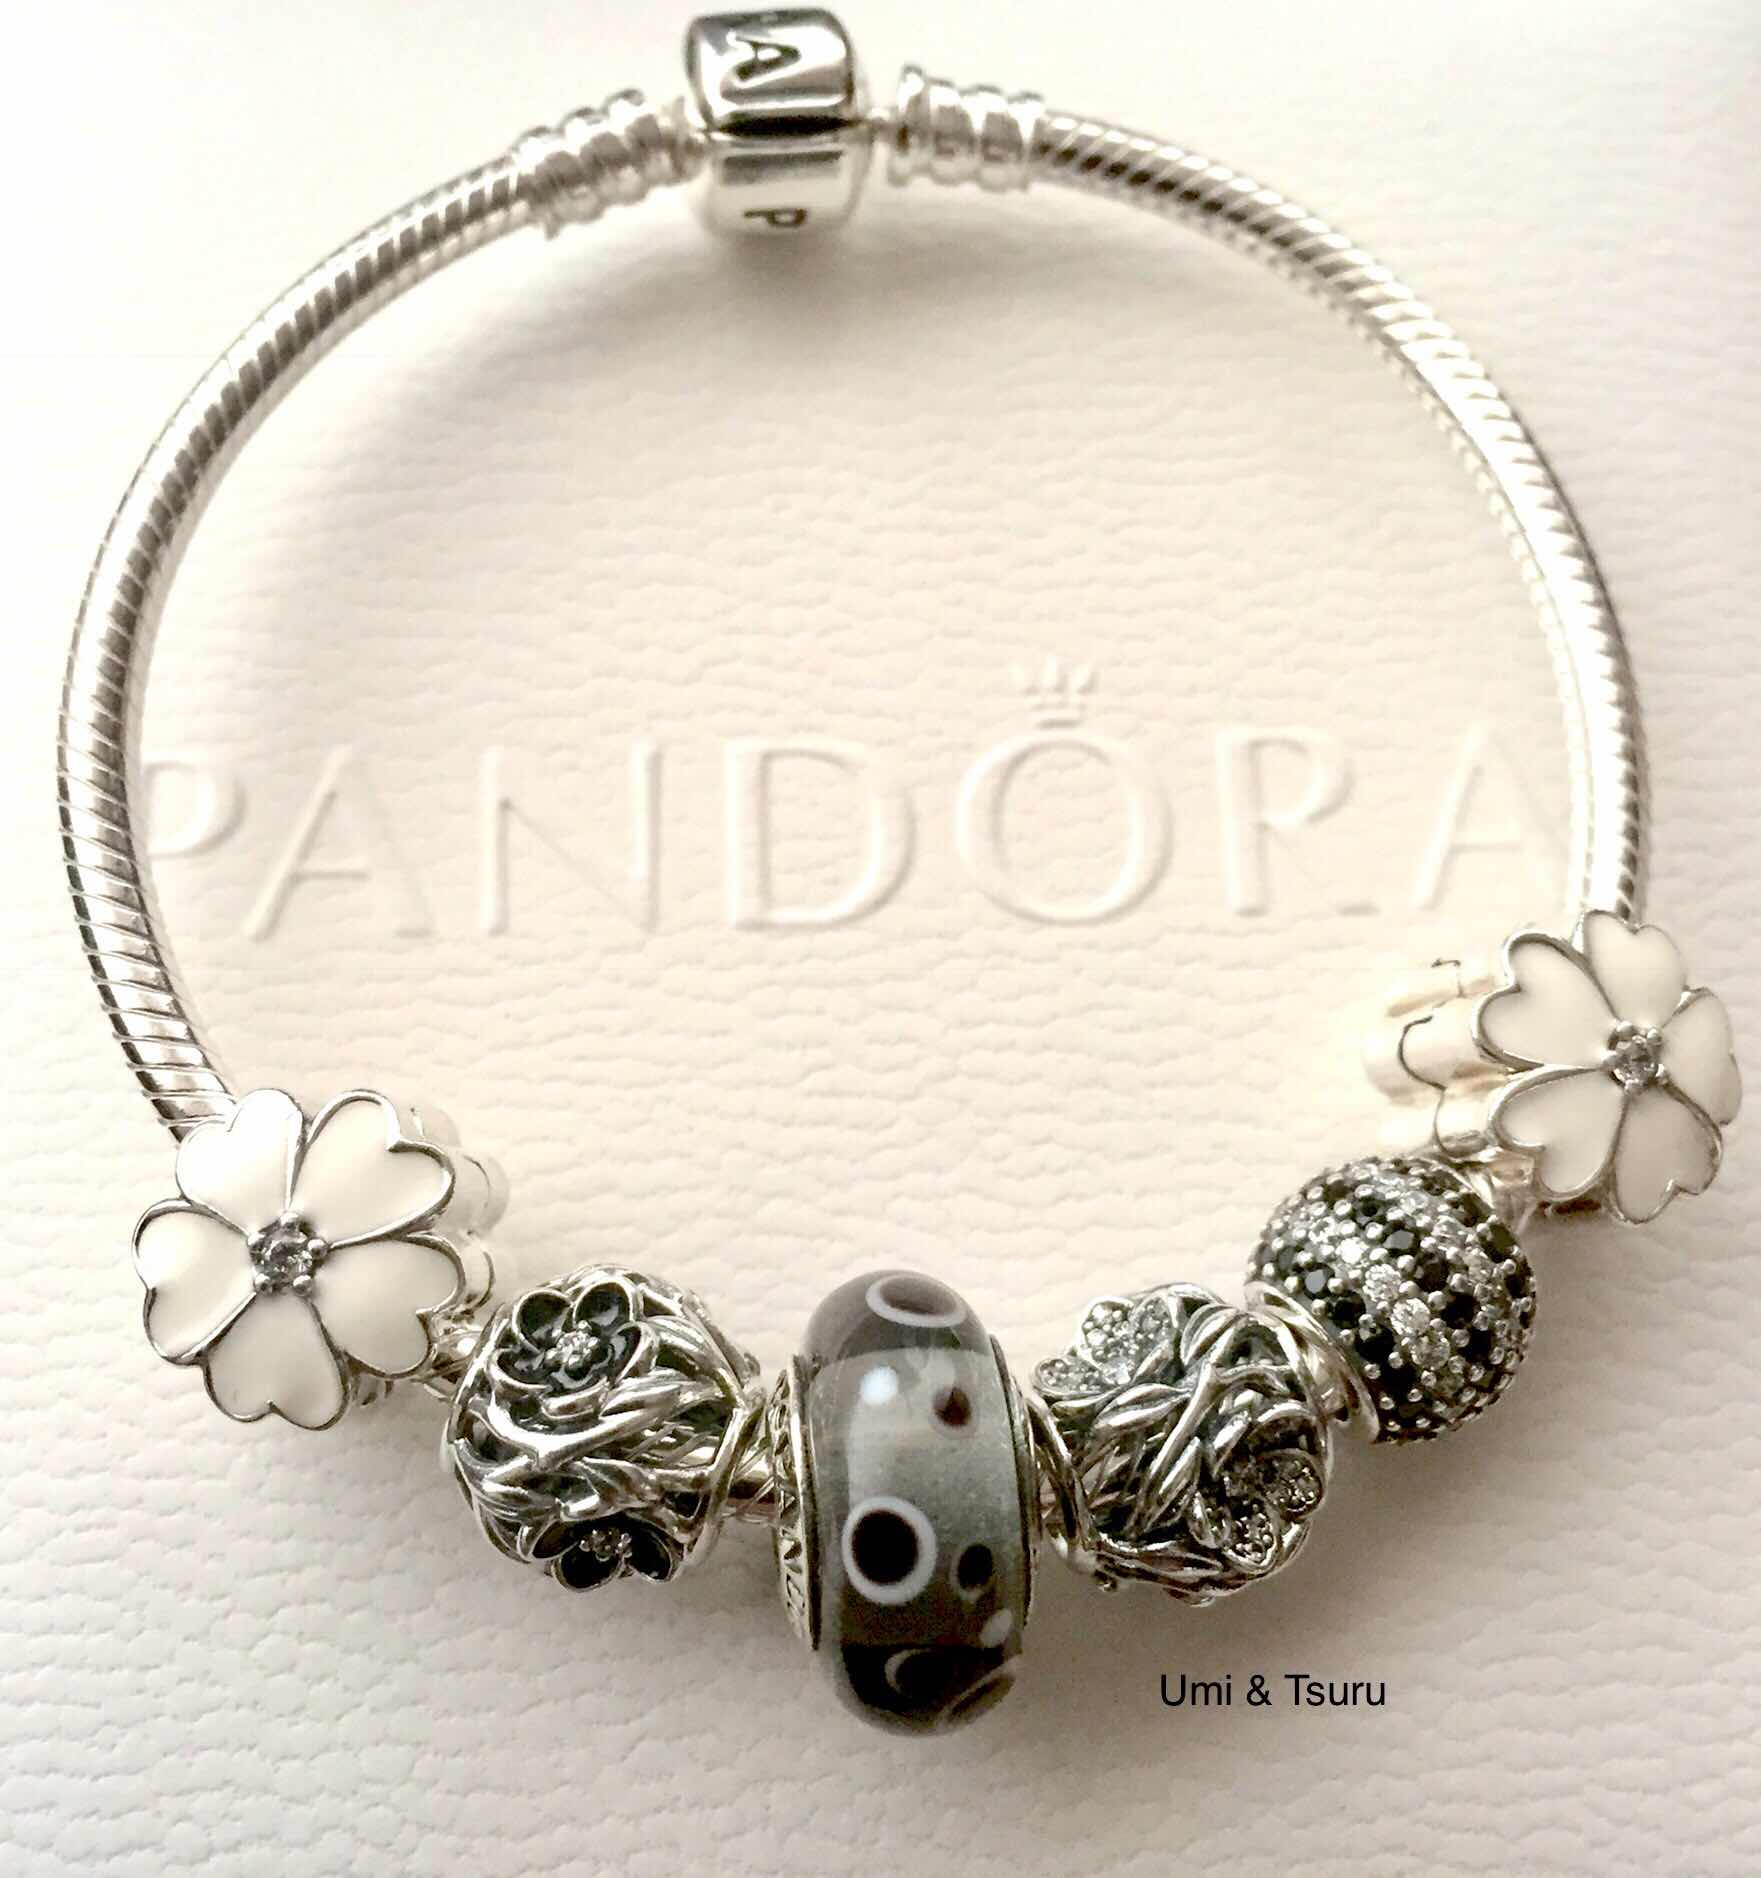 a5ddf2d88 Pandora Inner Radiance Charm,pandora outlets,pandora bracelet  jared,official From left to right Primrose silver clip with clear cz and  white enamel, ...